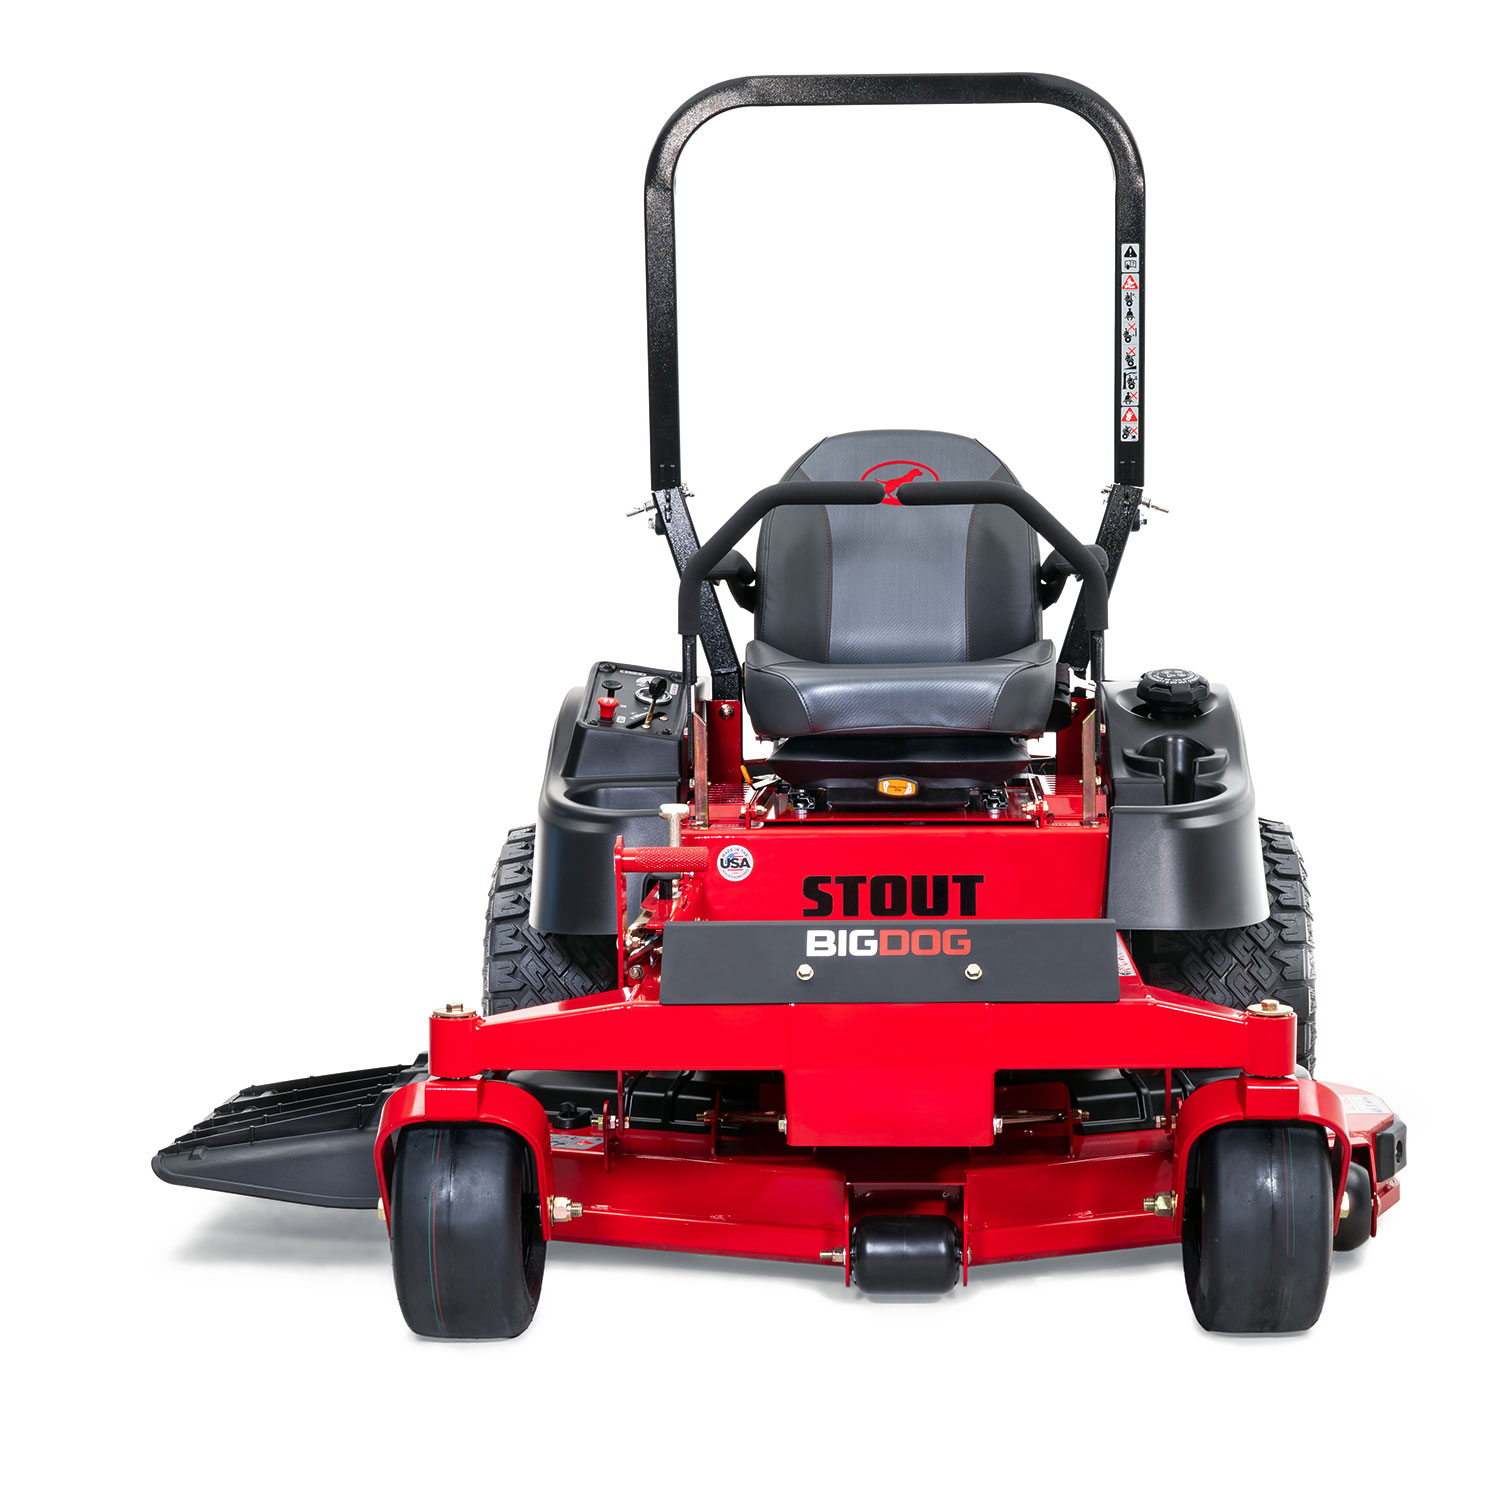 Image of the front of a red zero-turn mower